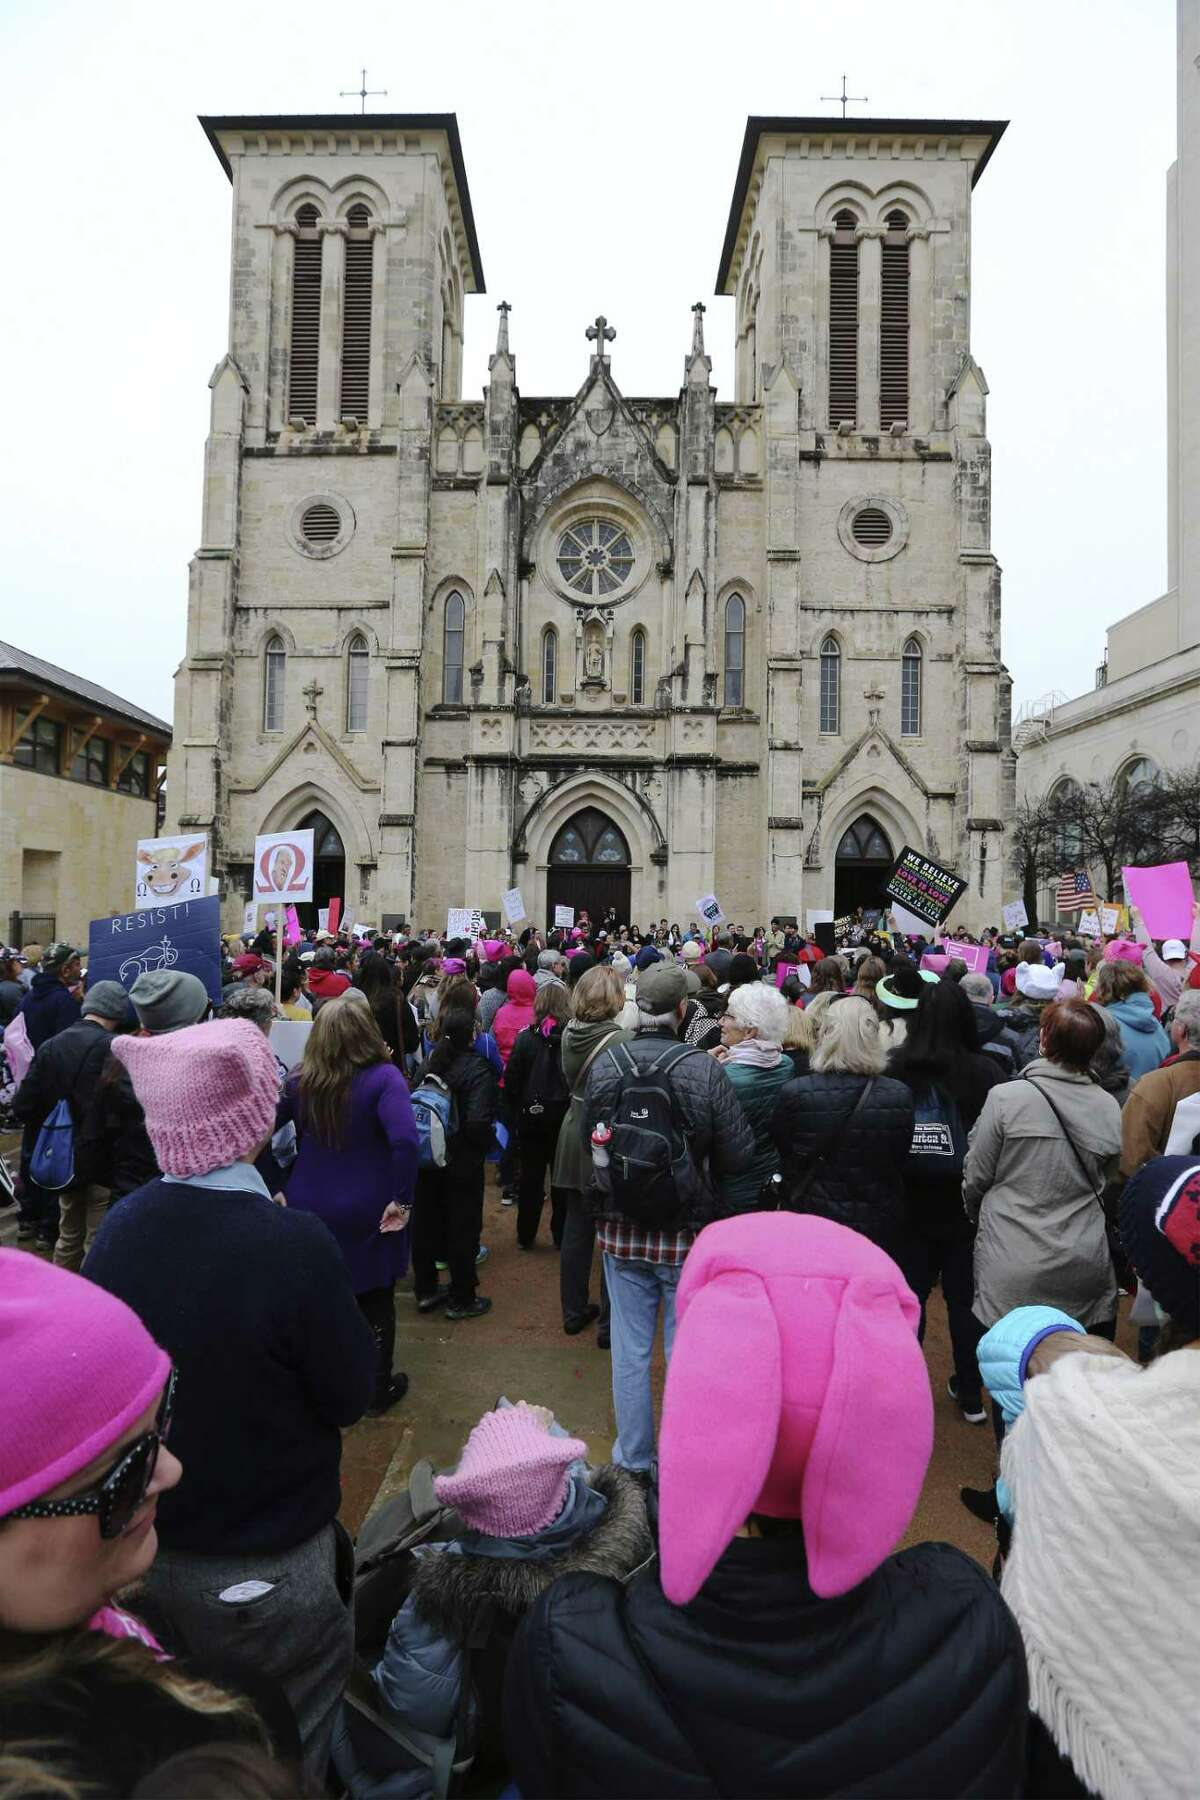 """About 500 people according to organizers gathered at Main Plaza to take part in the second annual Women's Rally on Saturday, Jan. 20, 2018. The message of the event hosted by TX23 Indivisible, was clear and decisive as speaker after speaker implored those in attendance that women's voices were not be silenced and to vote in upcoming elections. """"When women vote, we win,"""" said Cassandra Littlejohn, Bexar County Democratic Party Political Director. Toward the end of the two-hour rally, a brief march around Main Plaza came together as the event concluded. (Kin Man Hui/San Antonio Express-News)"""